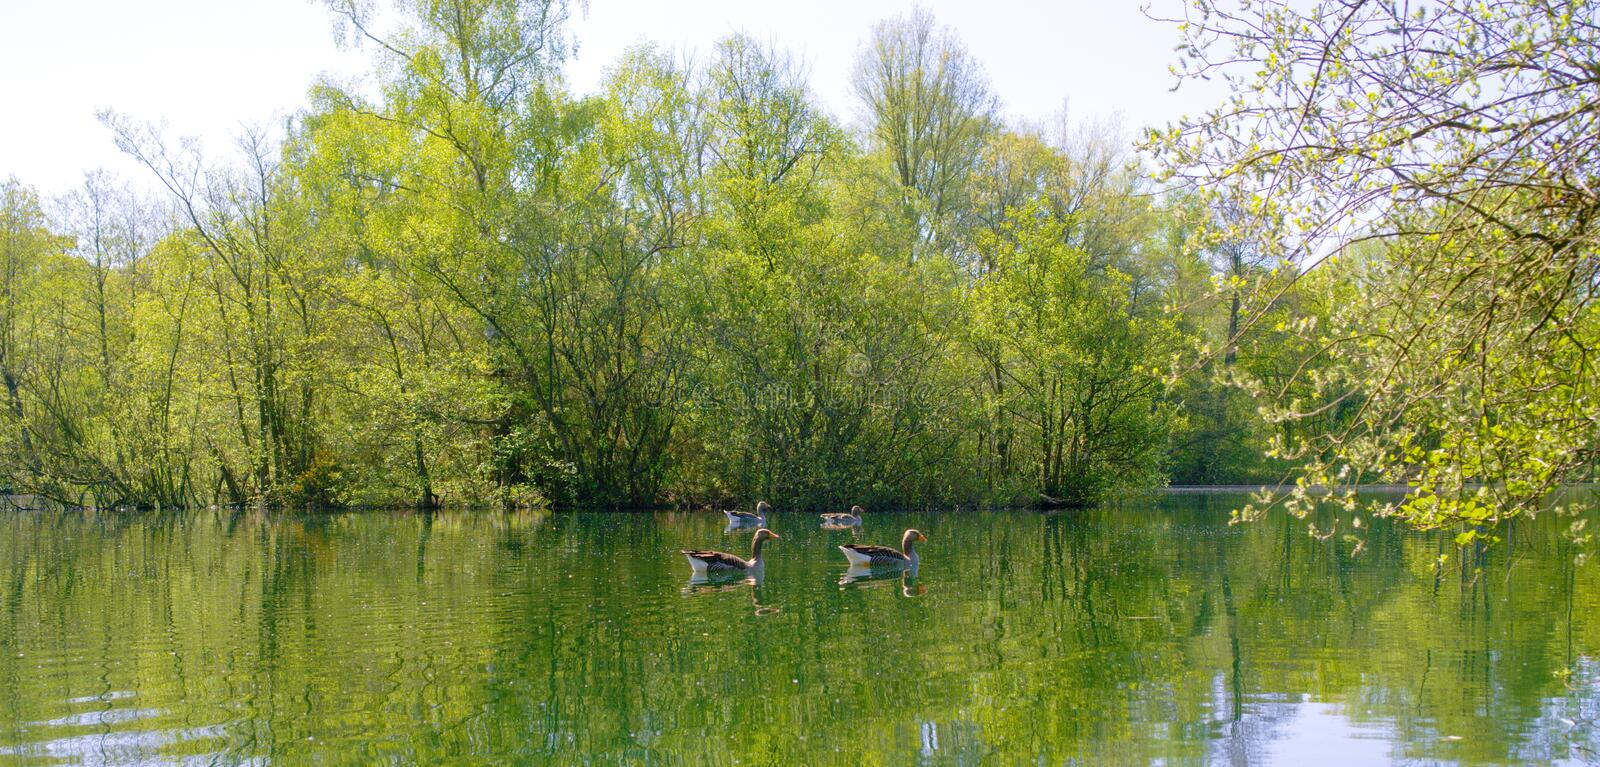 Quiet lake with Greylag geese. stock image